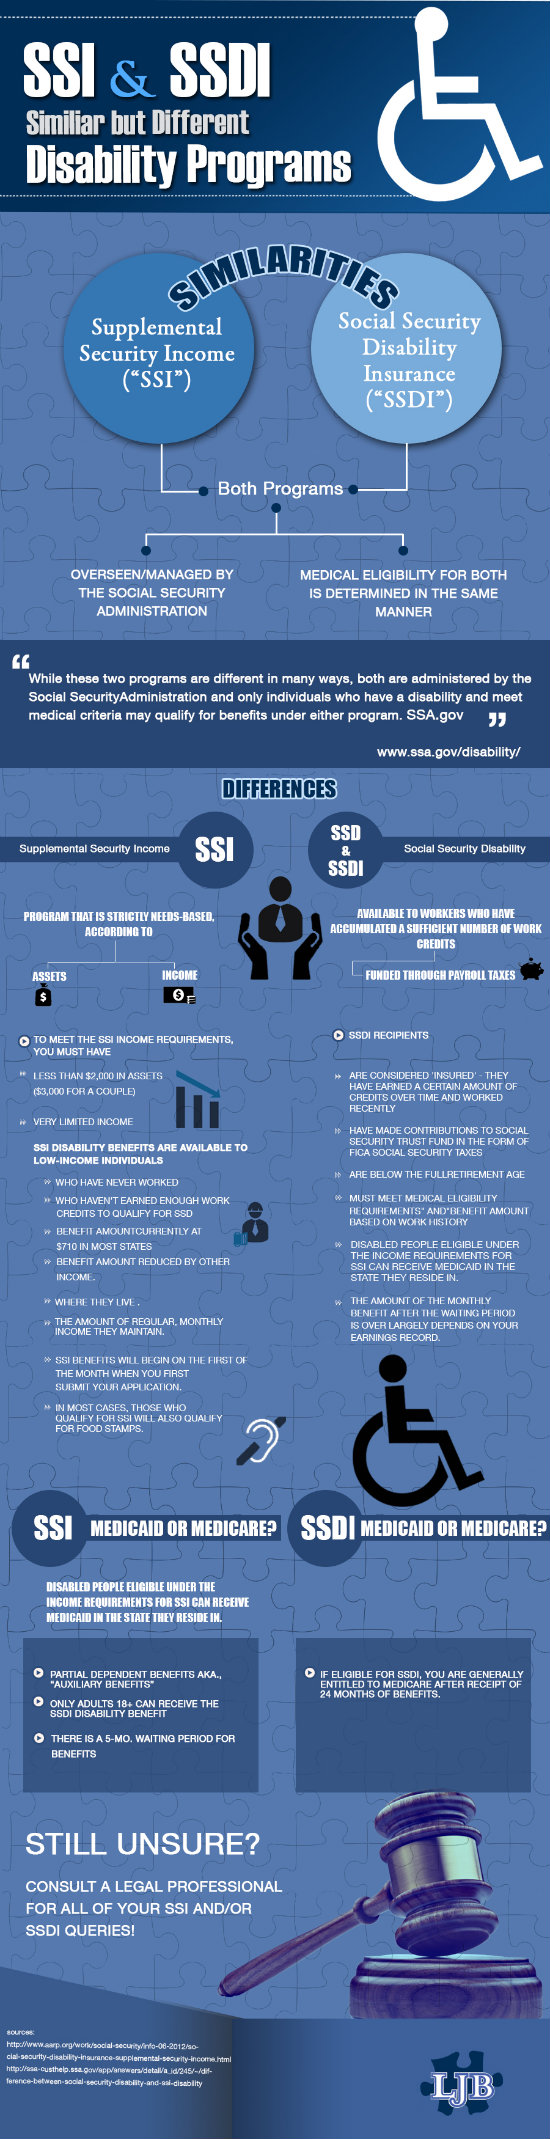 Understanding The Differences Between Ssi And Ssdi Loyd J Bourgeois Llc